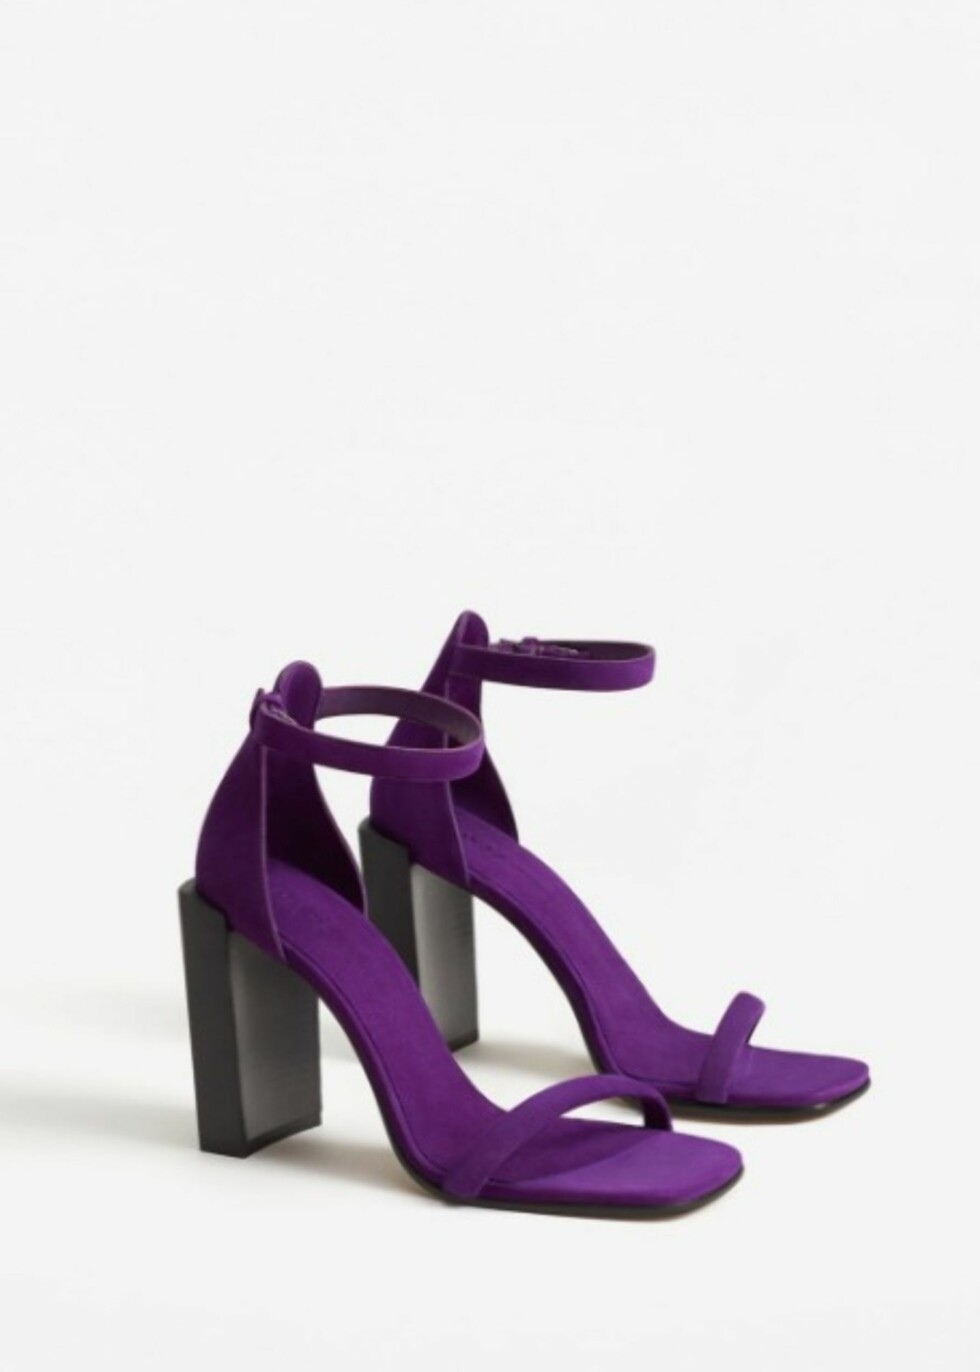 Sko fra Mango   kr 1199   http://shop.mango.com/NO-en/p1/woman/accessories/shoes/heeled-sandals/ankle-cuff-leather-sandals?id=83017029_65&n=1&s=accesorios.zapatos&ts=1490014871947